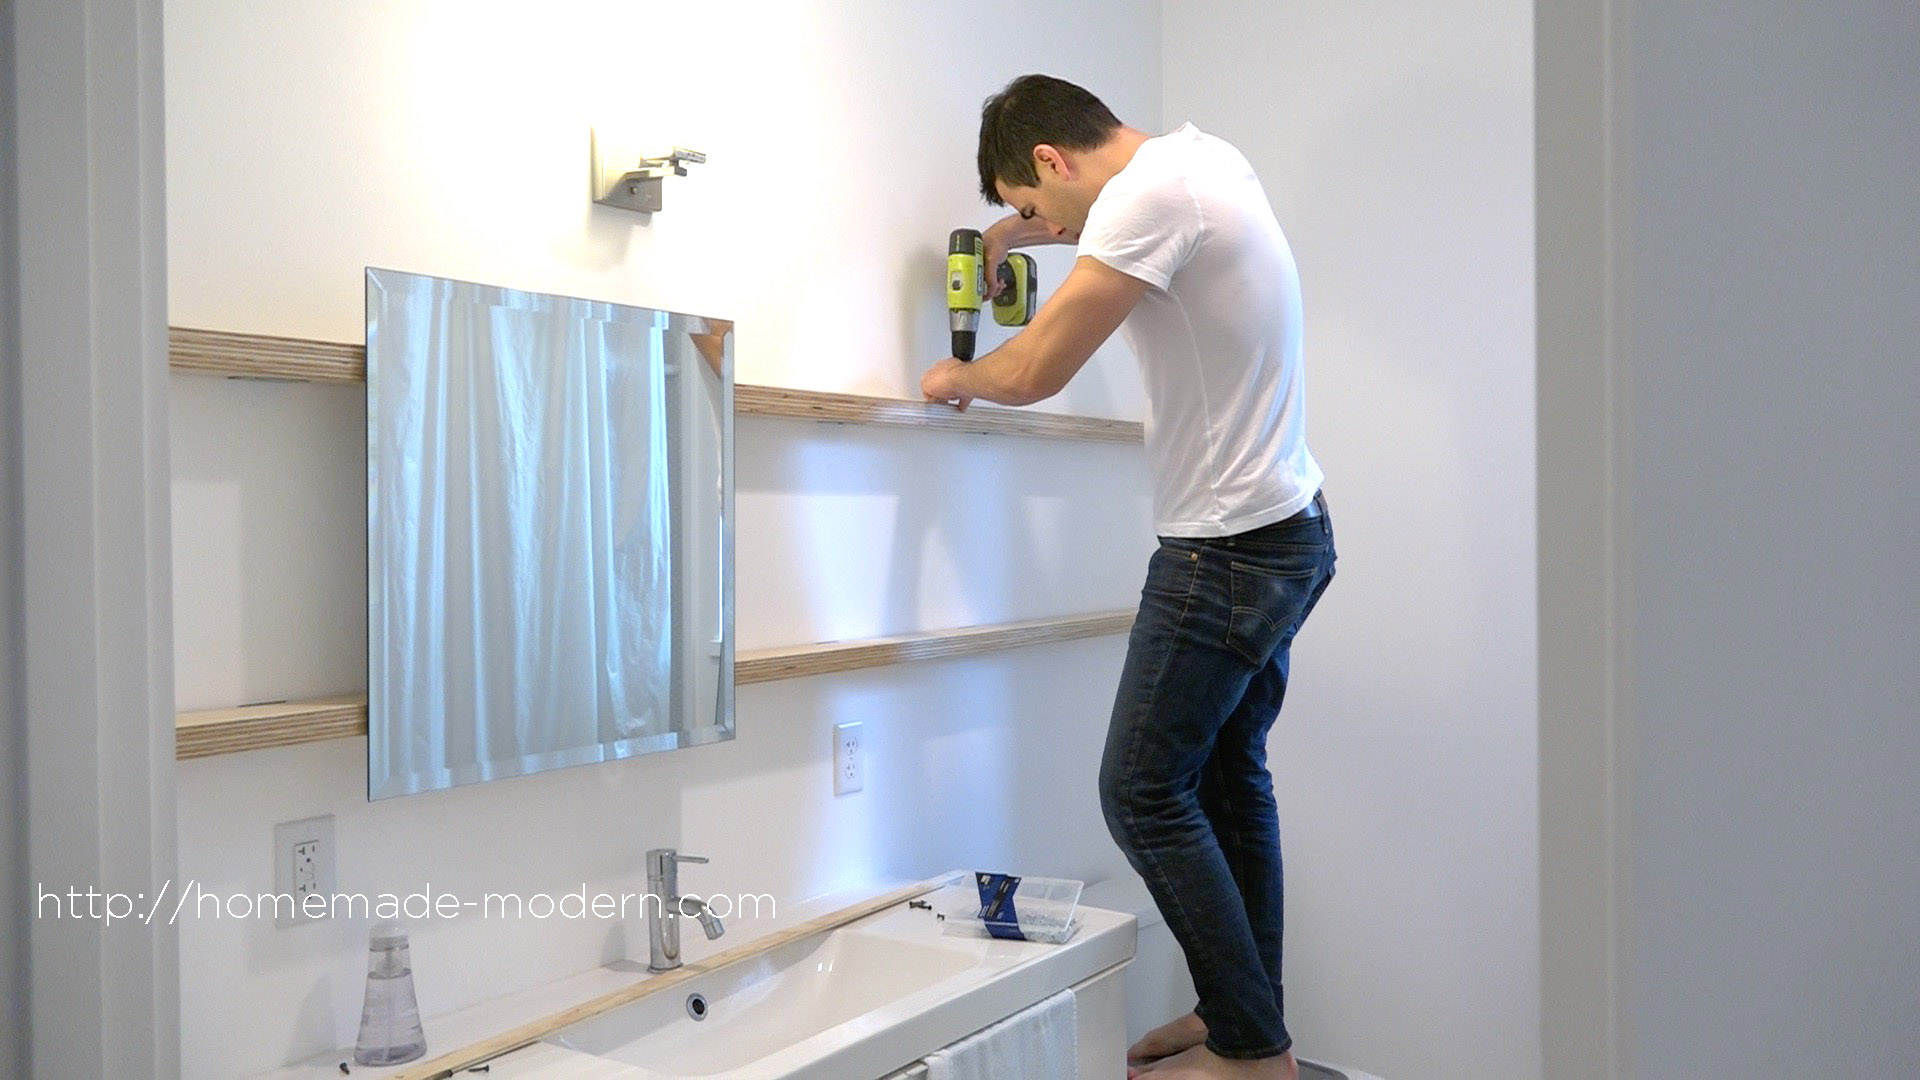 Bathroom Mirror Diy homemade modern ep94 diy sliding bathroom mirror